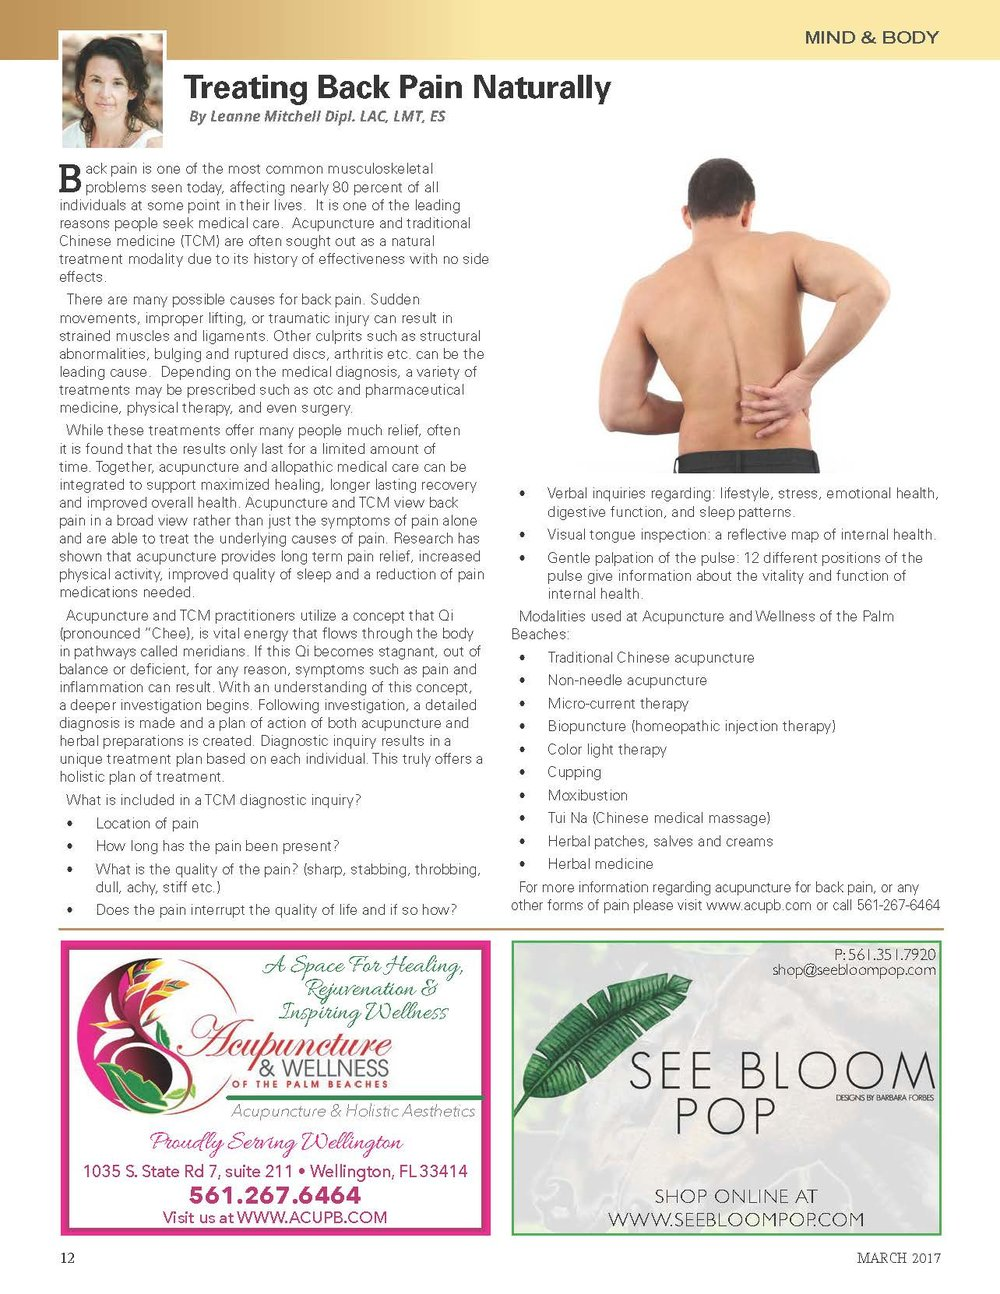 acupuncture and wellness of the palm beaches- Treating back pain naturally